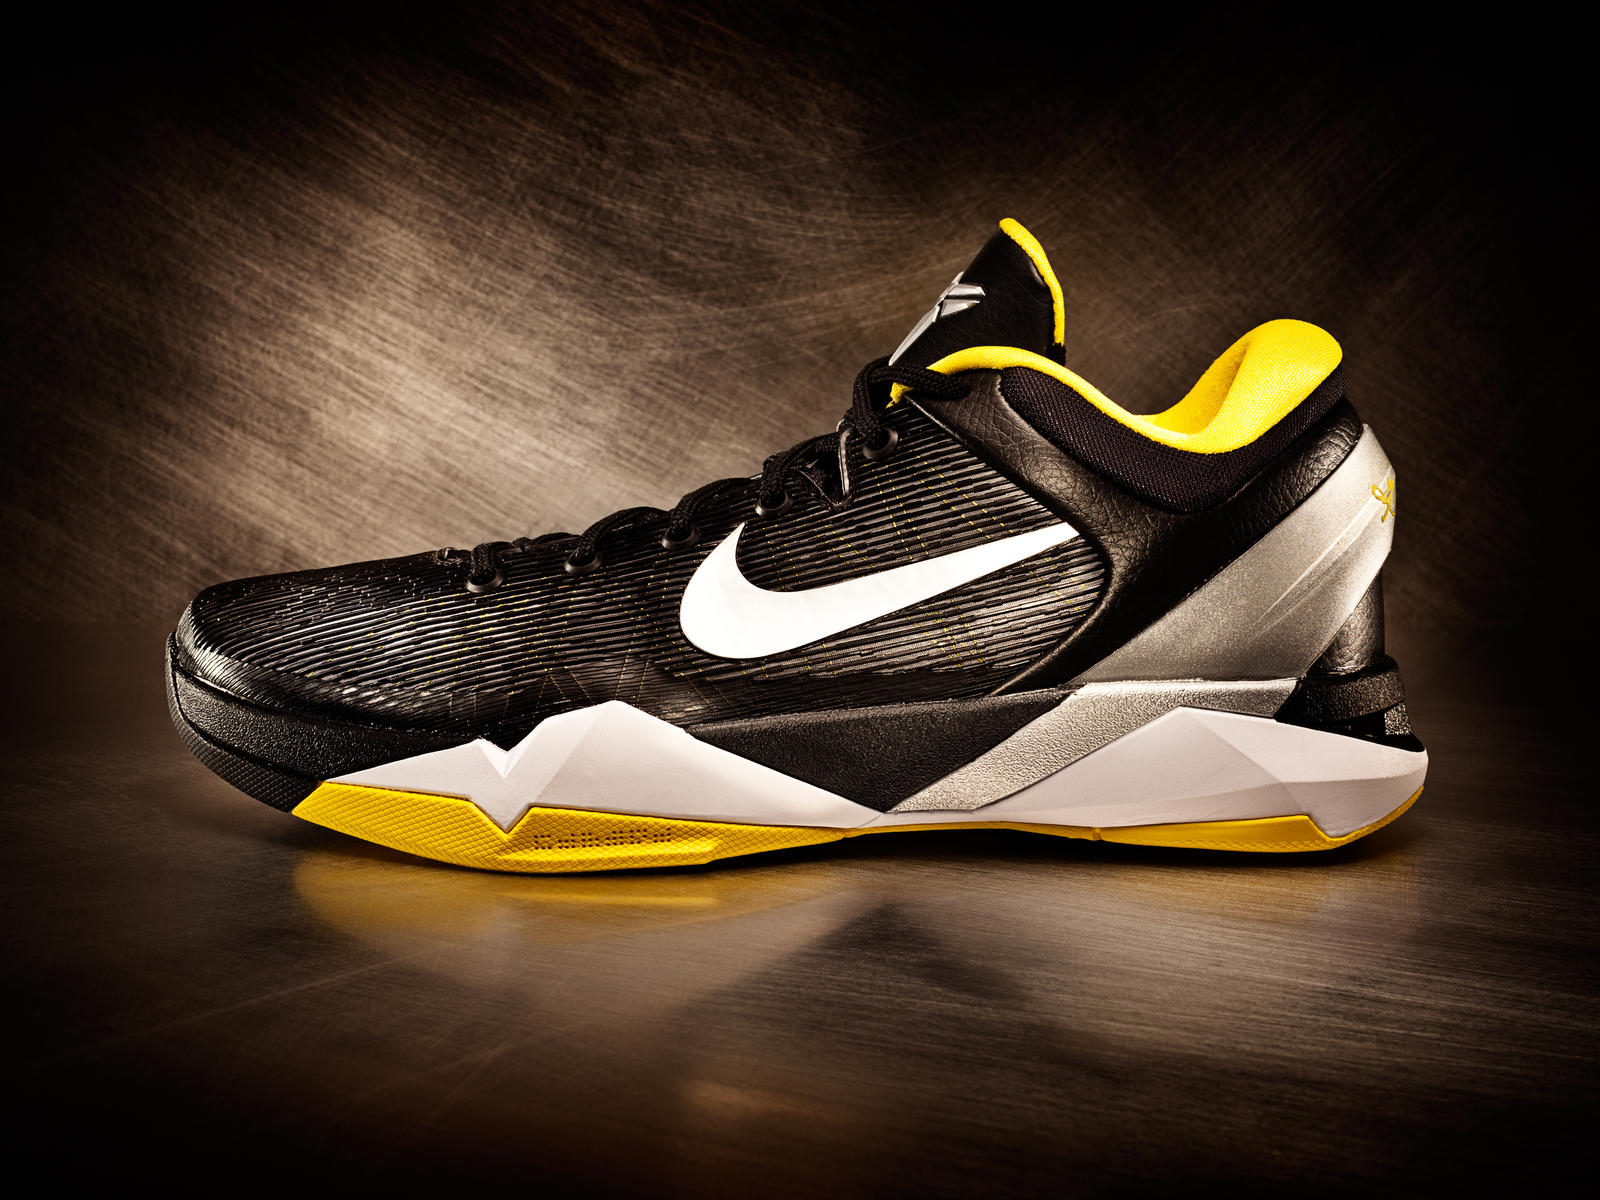 Nike Kobe Bryant Shoes